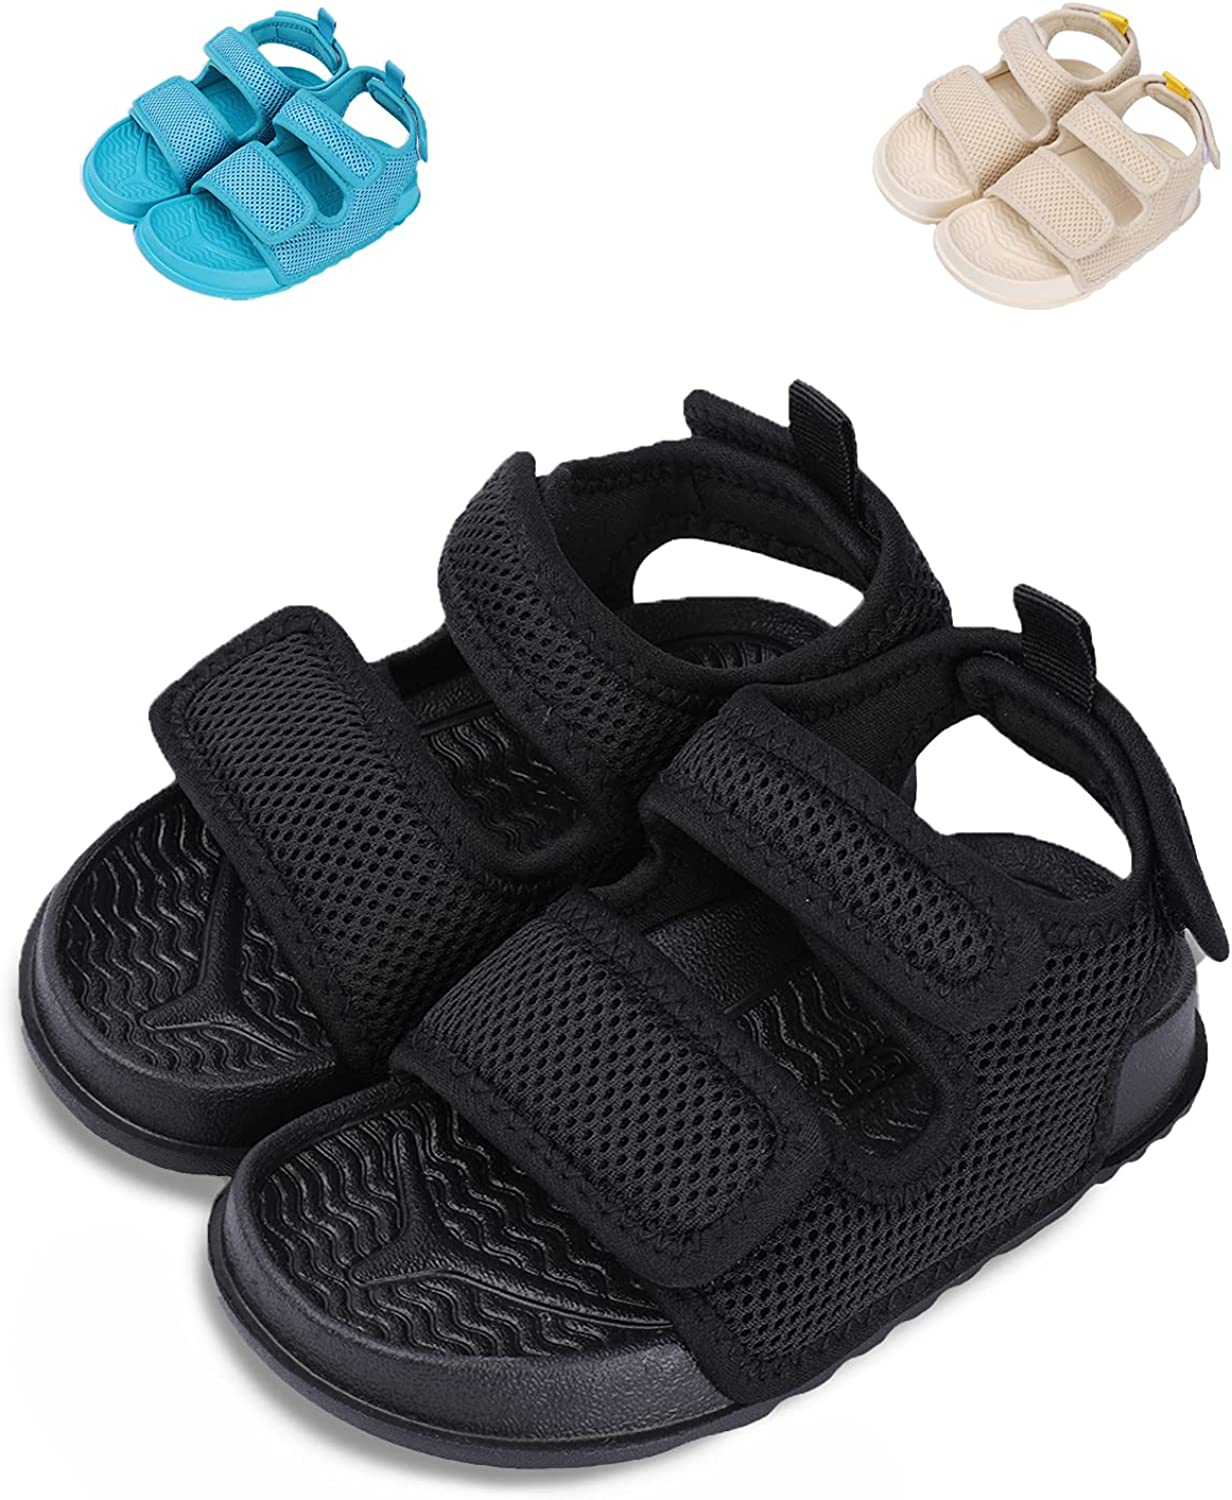 SEMARY Little Kids service Summer Detroit Mall Sandals Shoes Toddler Breathable Beach